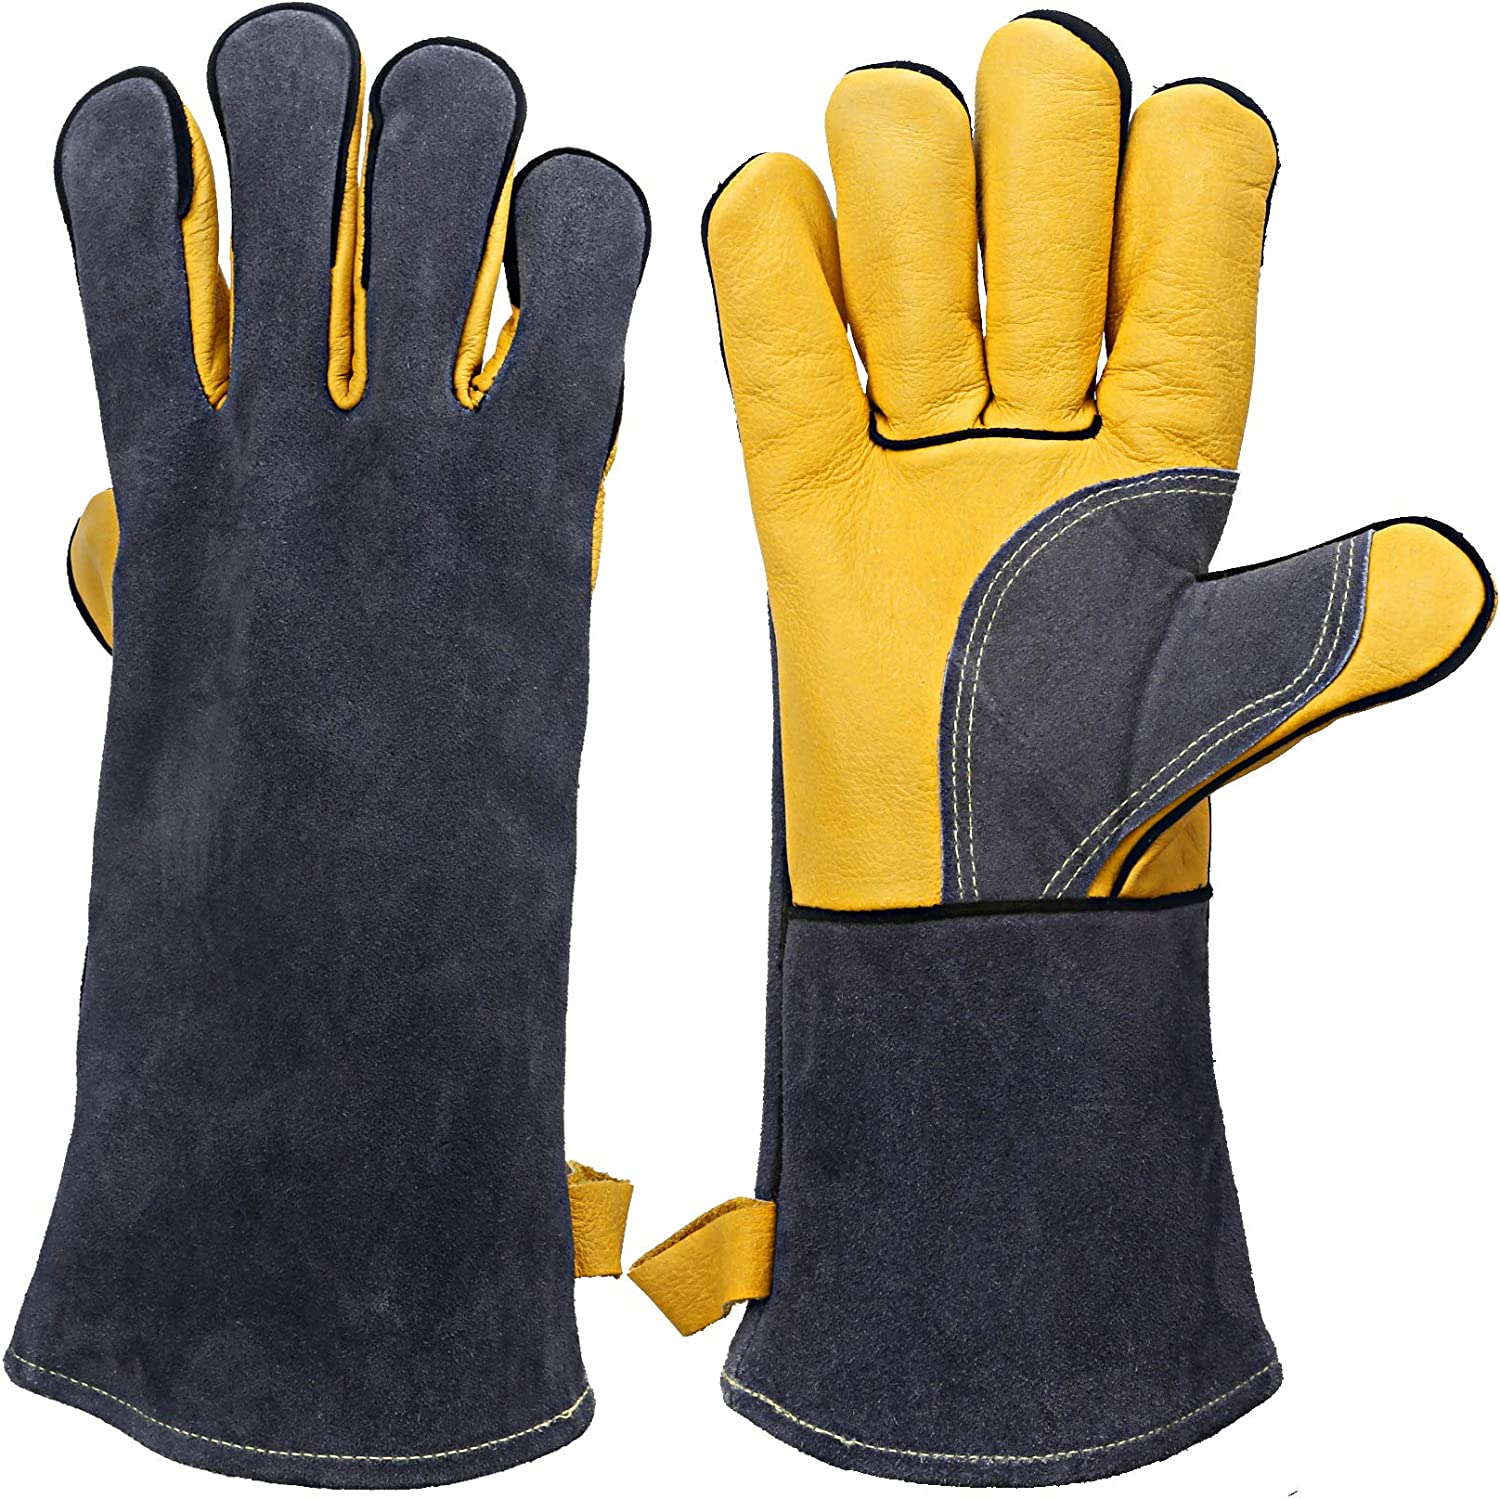 KIM YUAN Extreme Heat/Fire Resistant Gloves Leather with Kevlar Stitching, Mitts Perfect for Welding/Oven/Grill/BBQ/Mig/Fireplace/Stove/Pot Holder/Tig Welder/Animal Handling, (14in-greay)